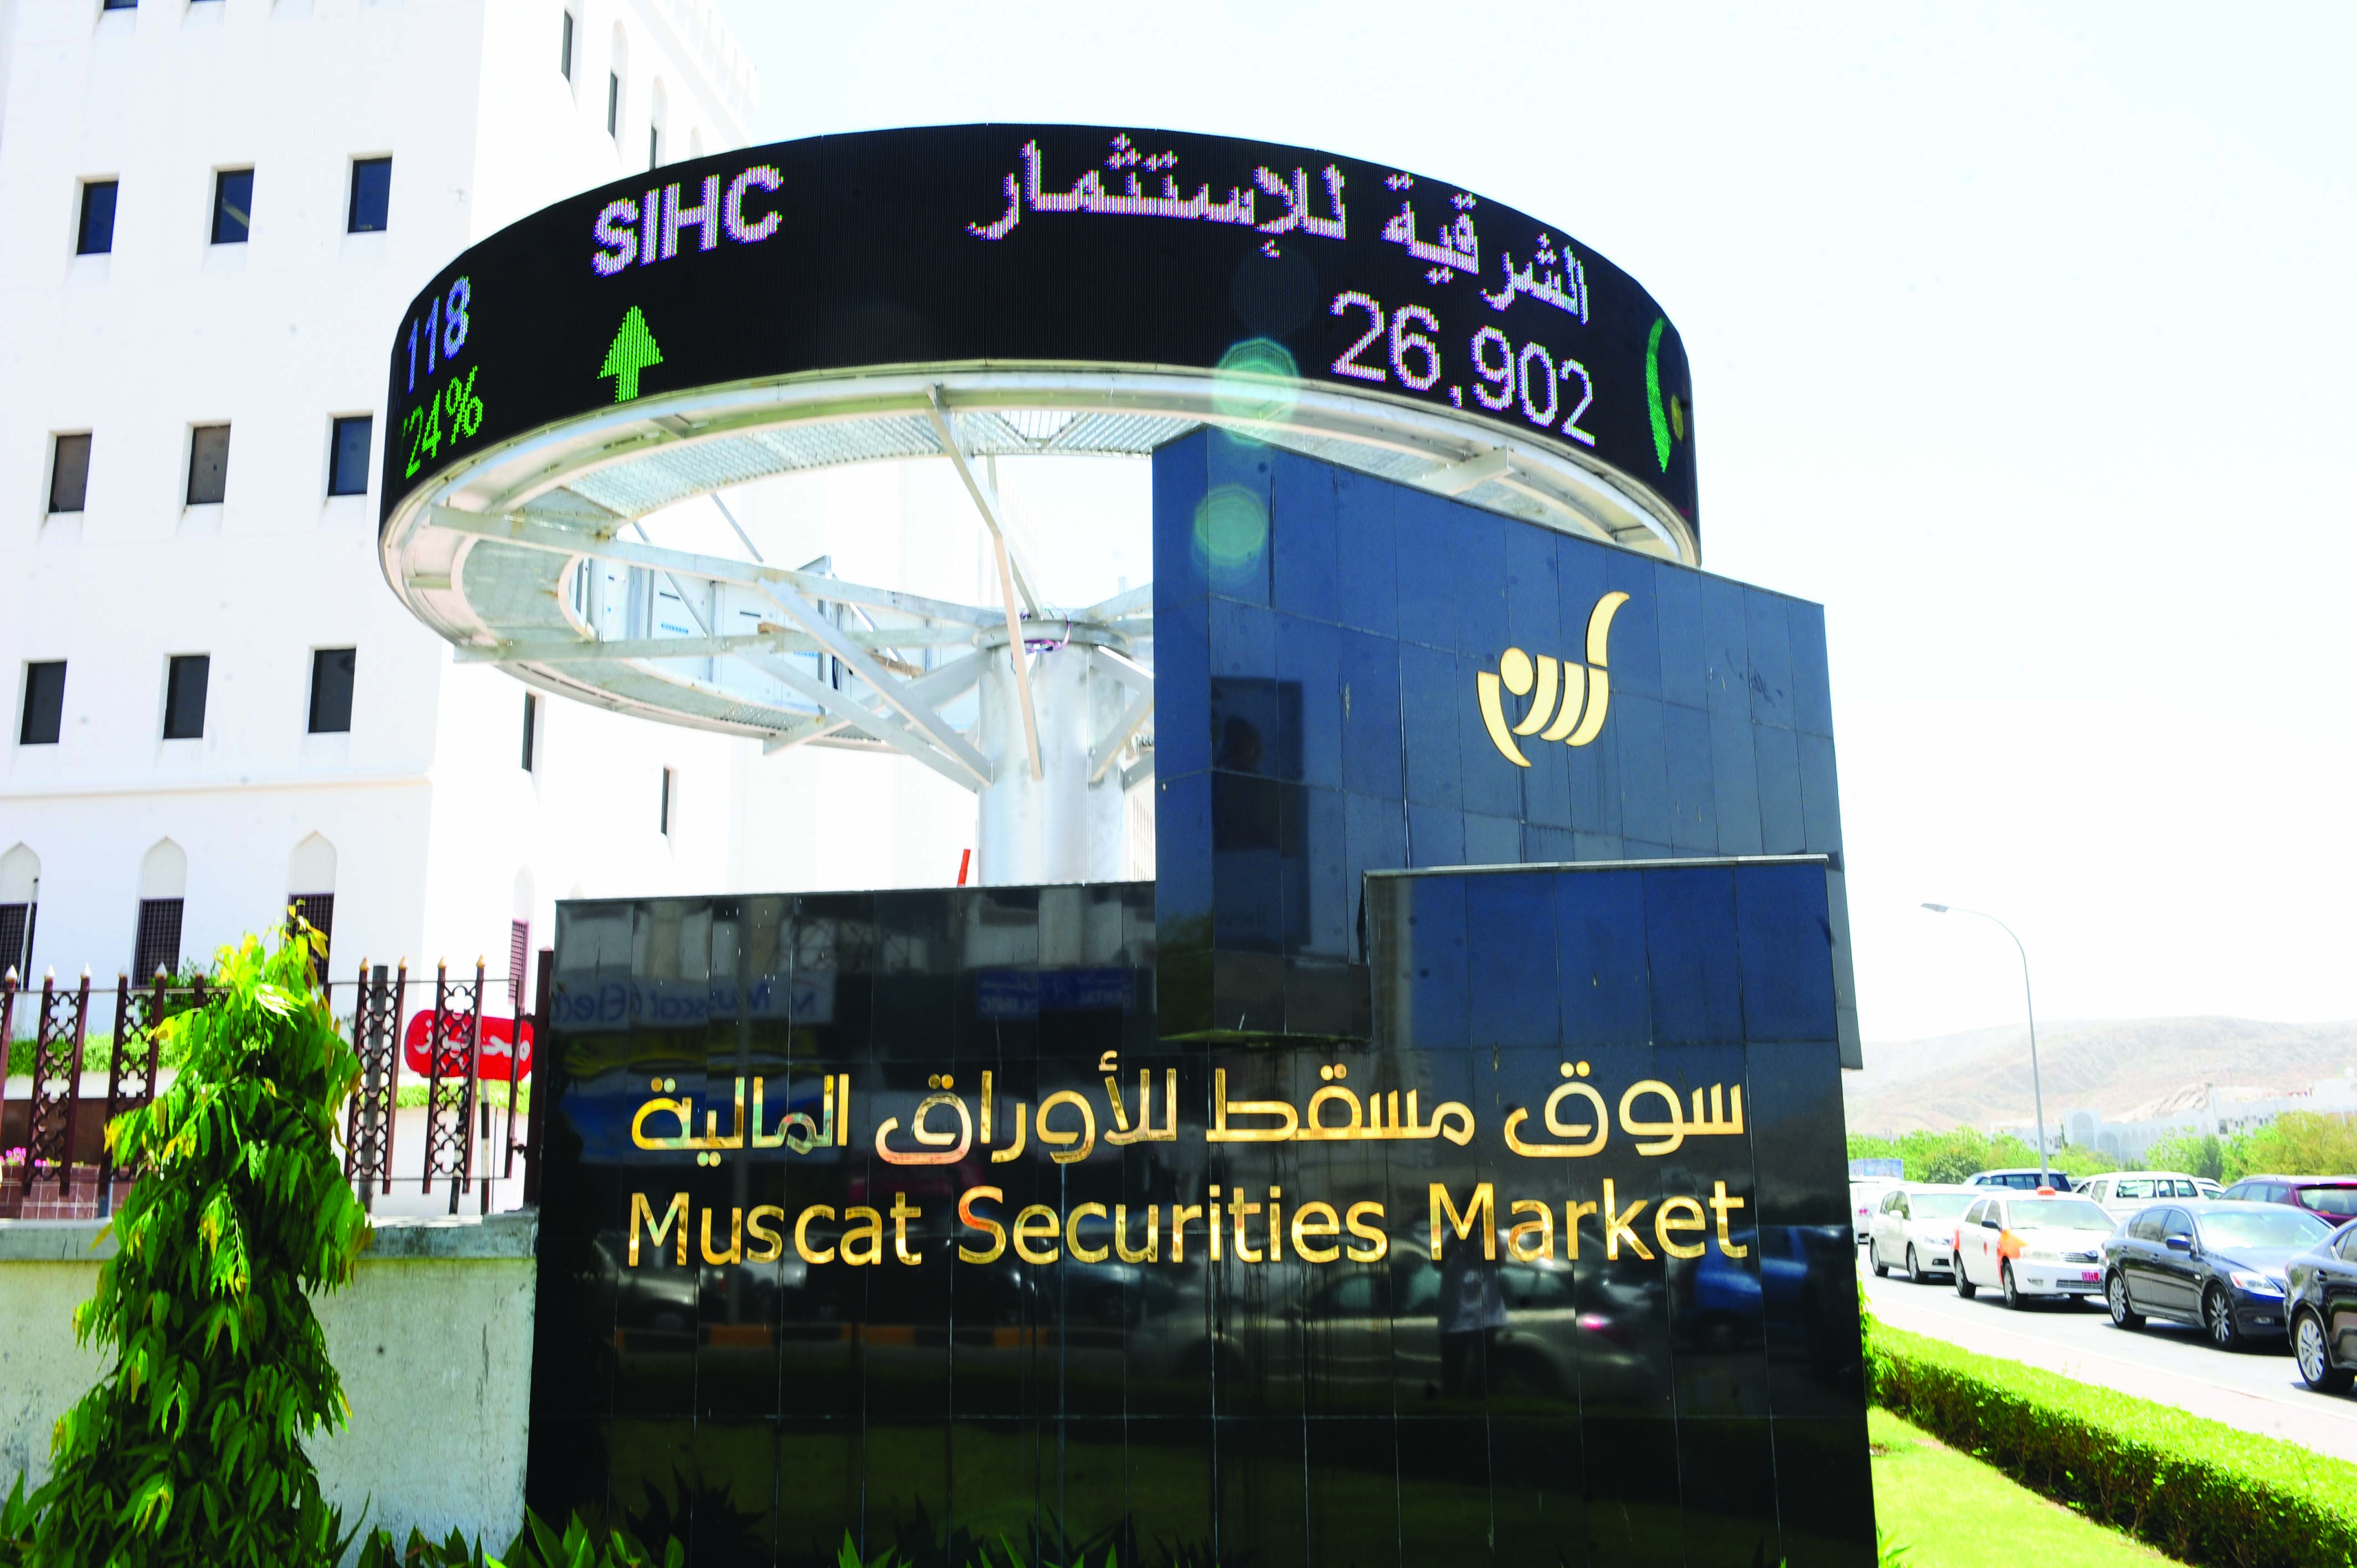 Dividend fund reinvestment to prop-up Oman stock market liquidity